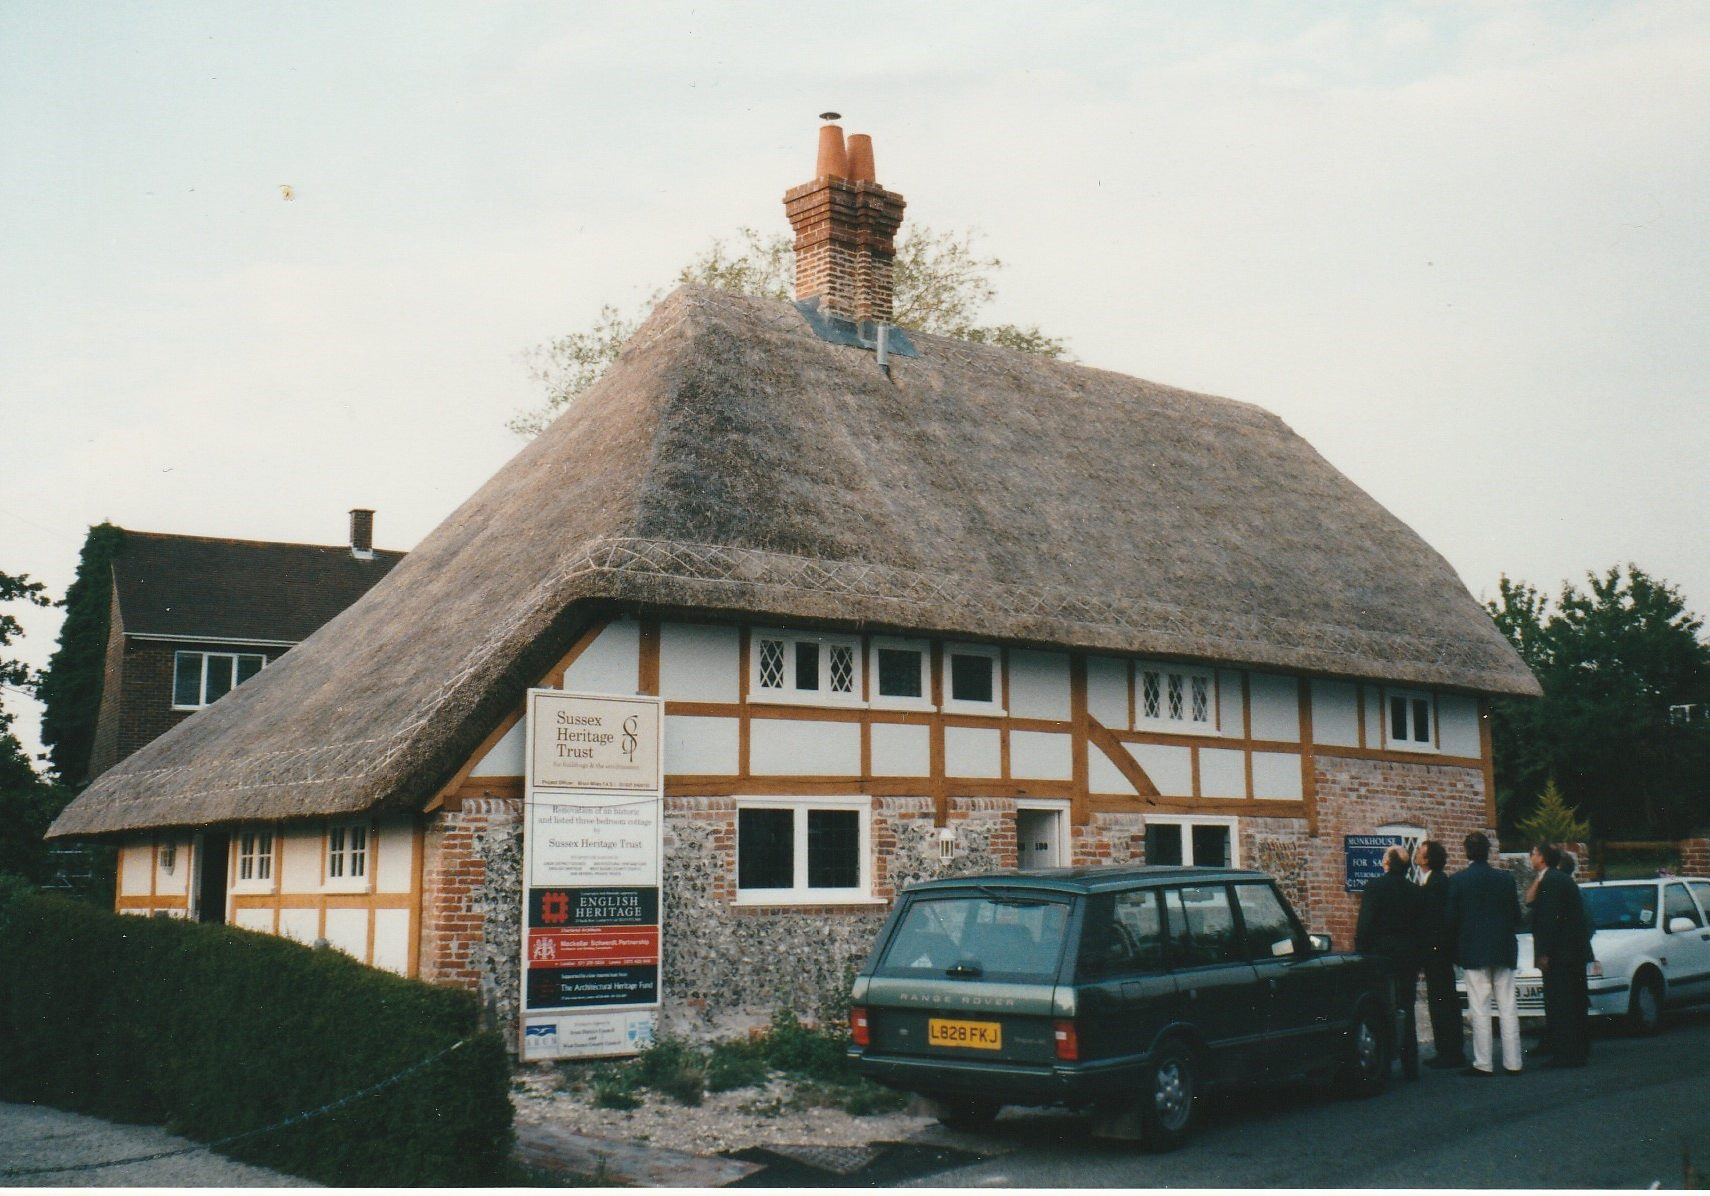 Long straw roof for Sussex Heritage Trust